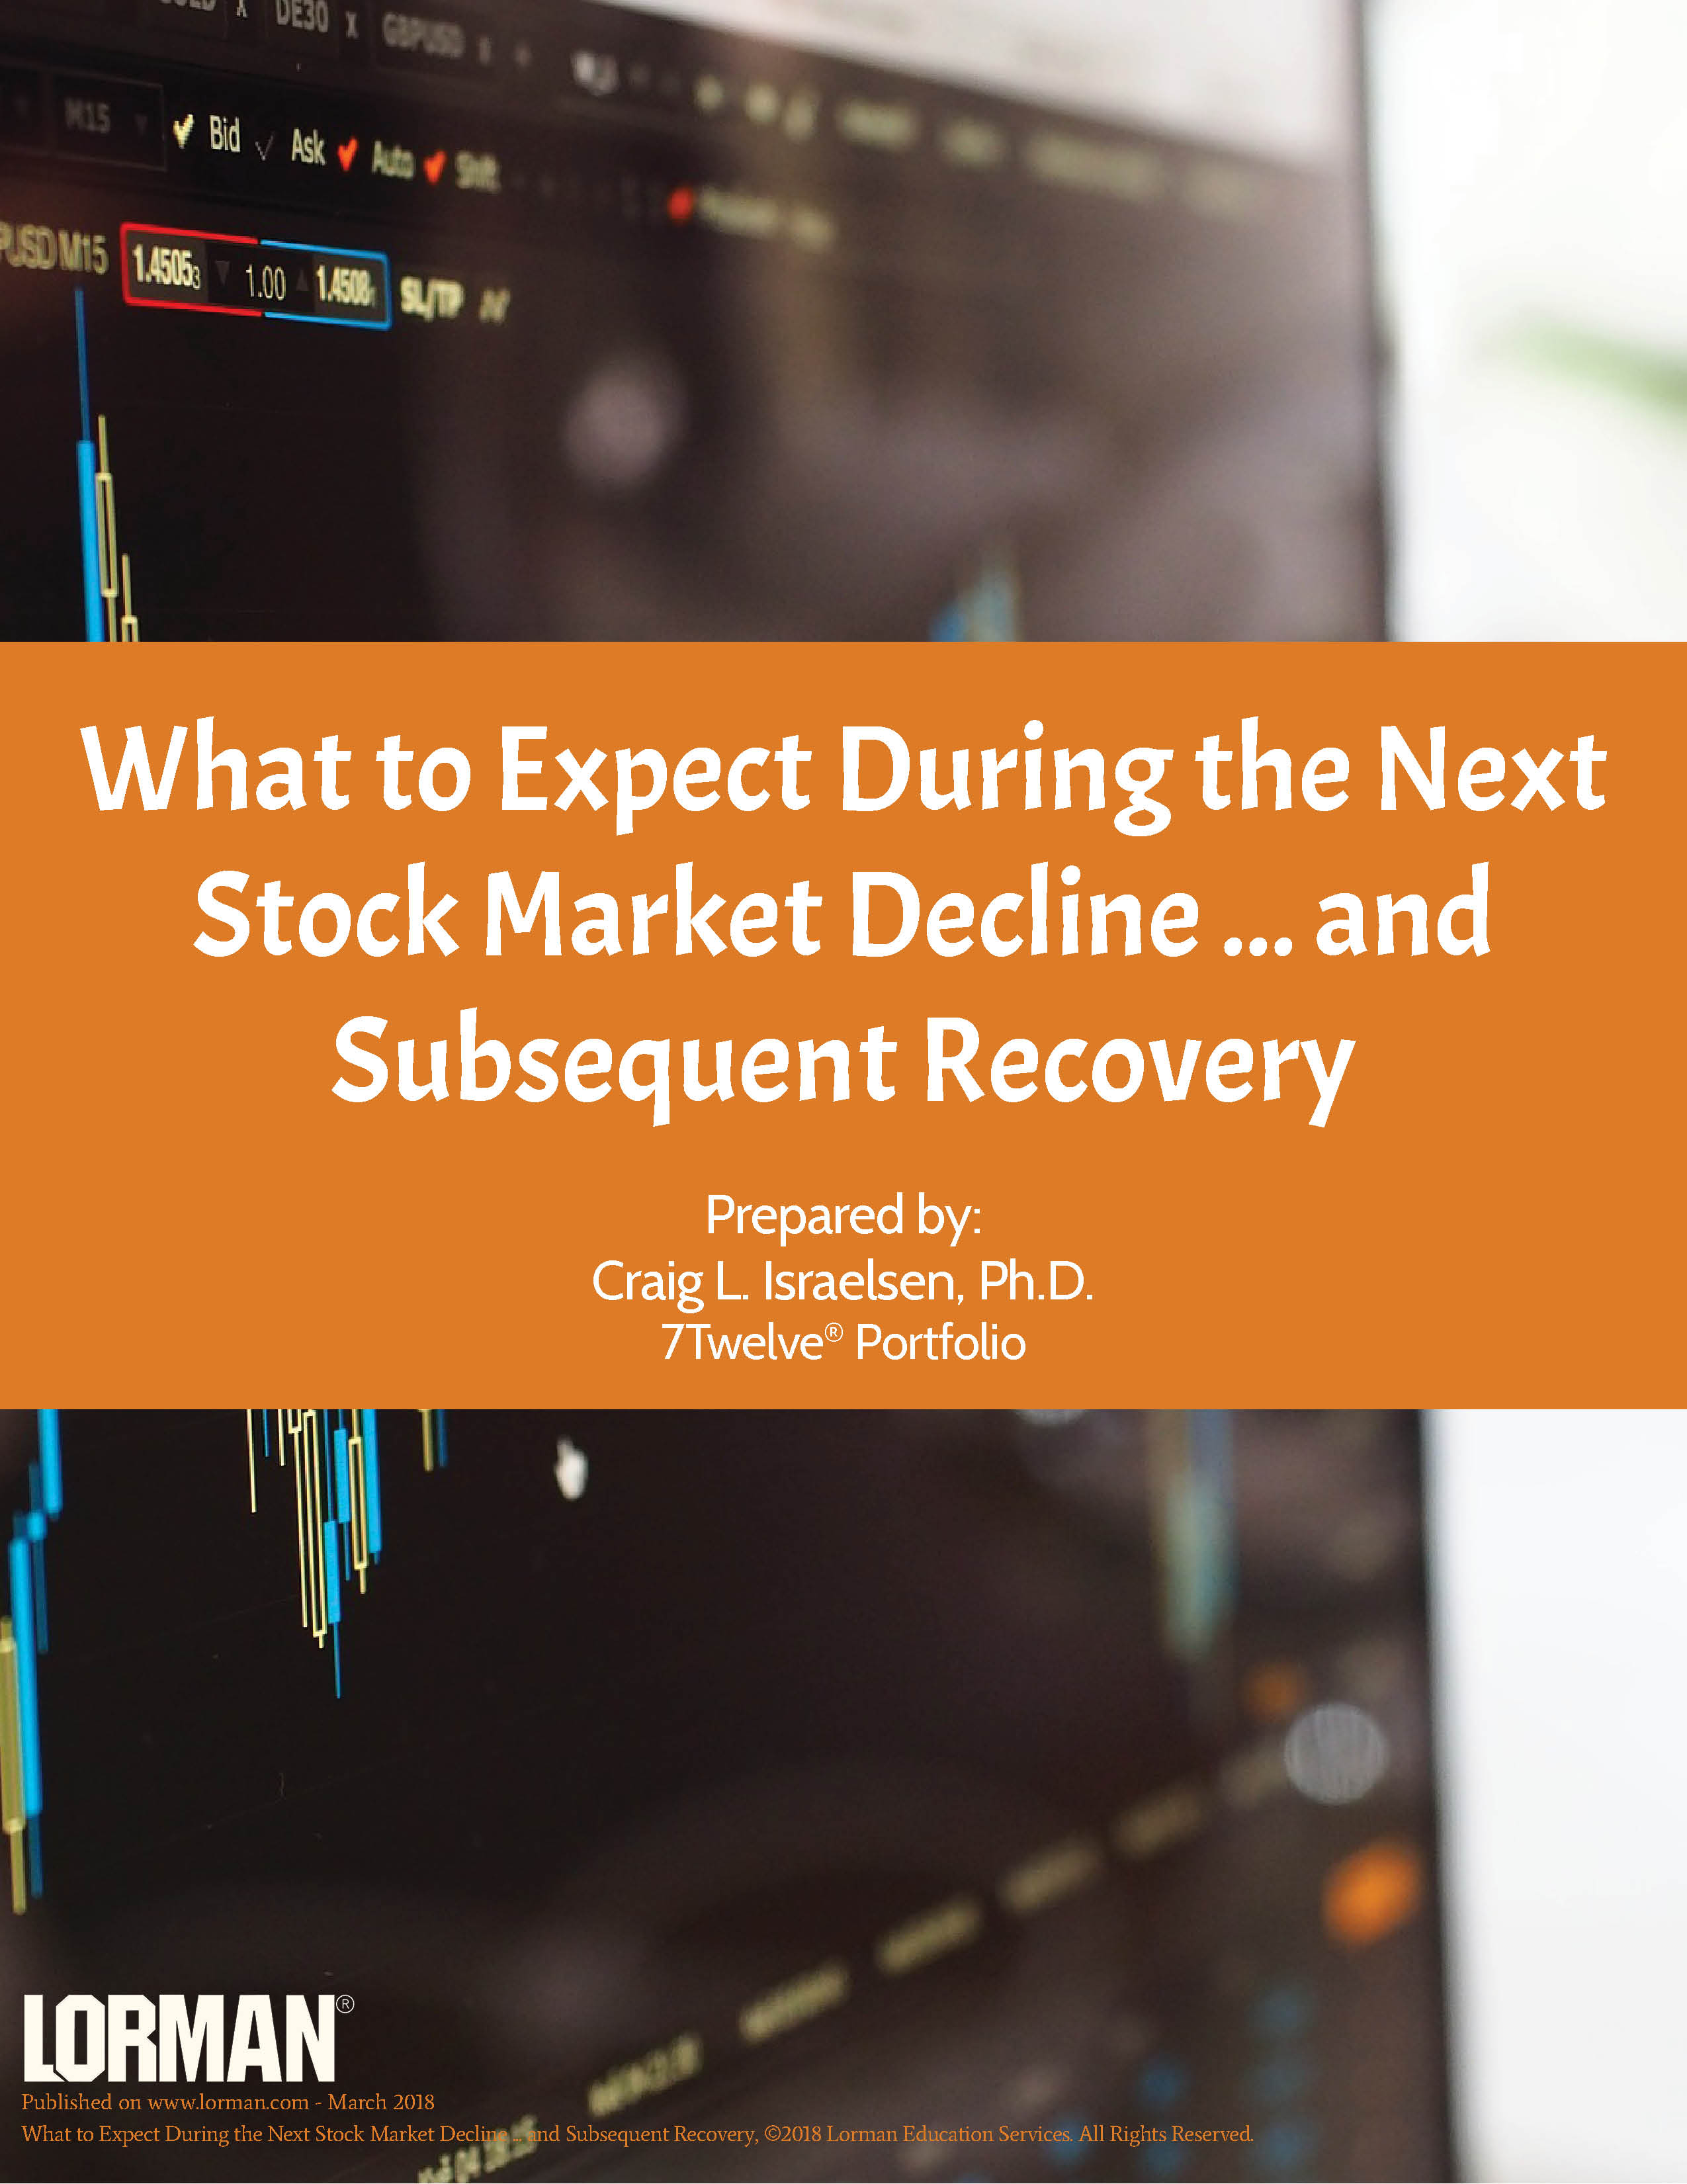 What to Expect During the Next Stock Market Decline ... and Subsequent Recovery